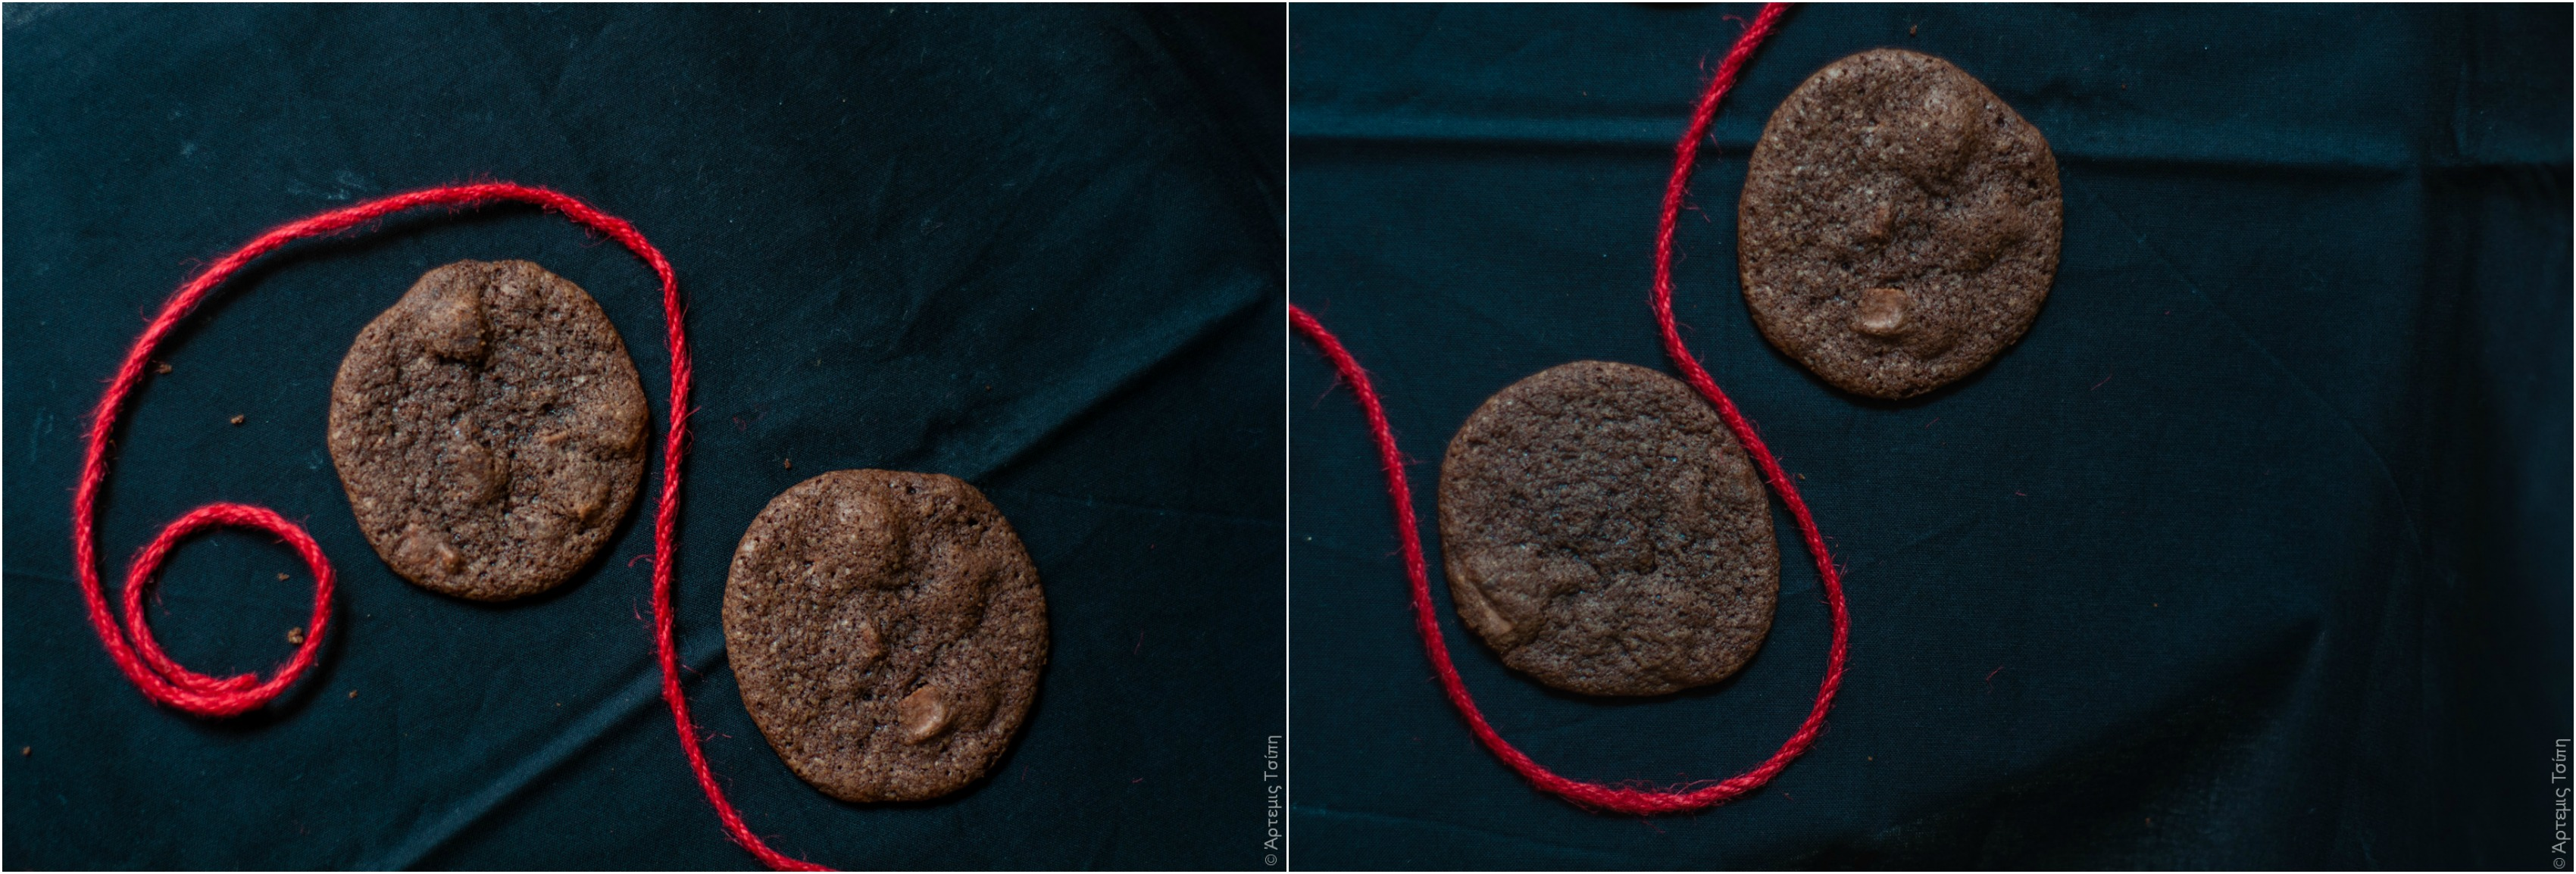 Chocolate cookies Collage